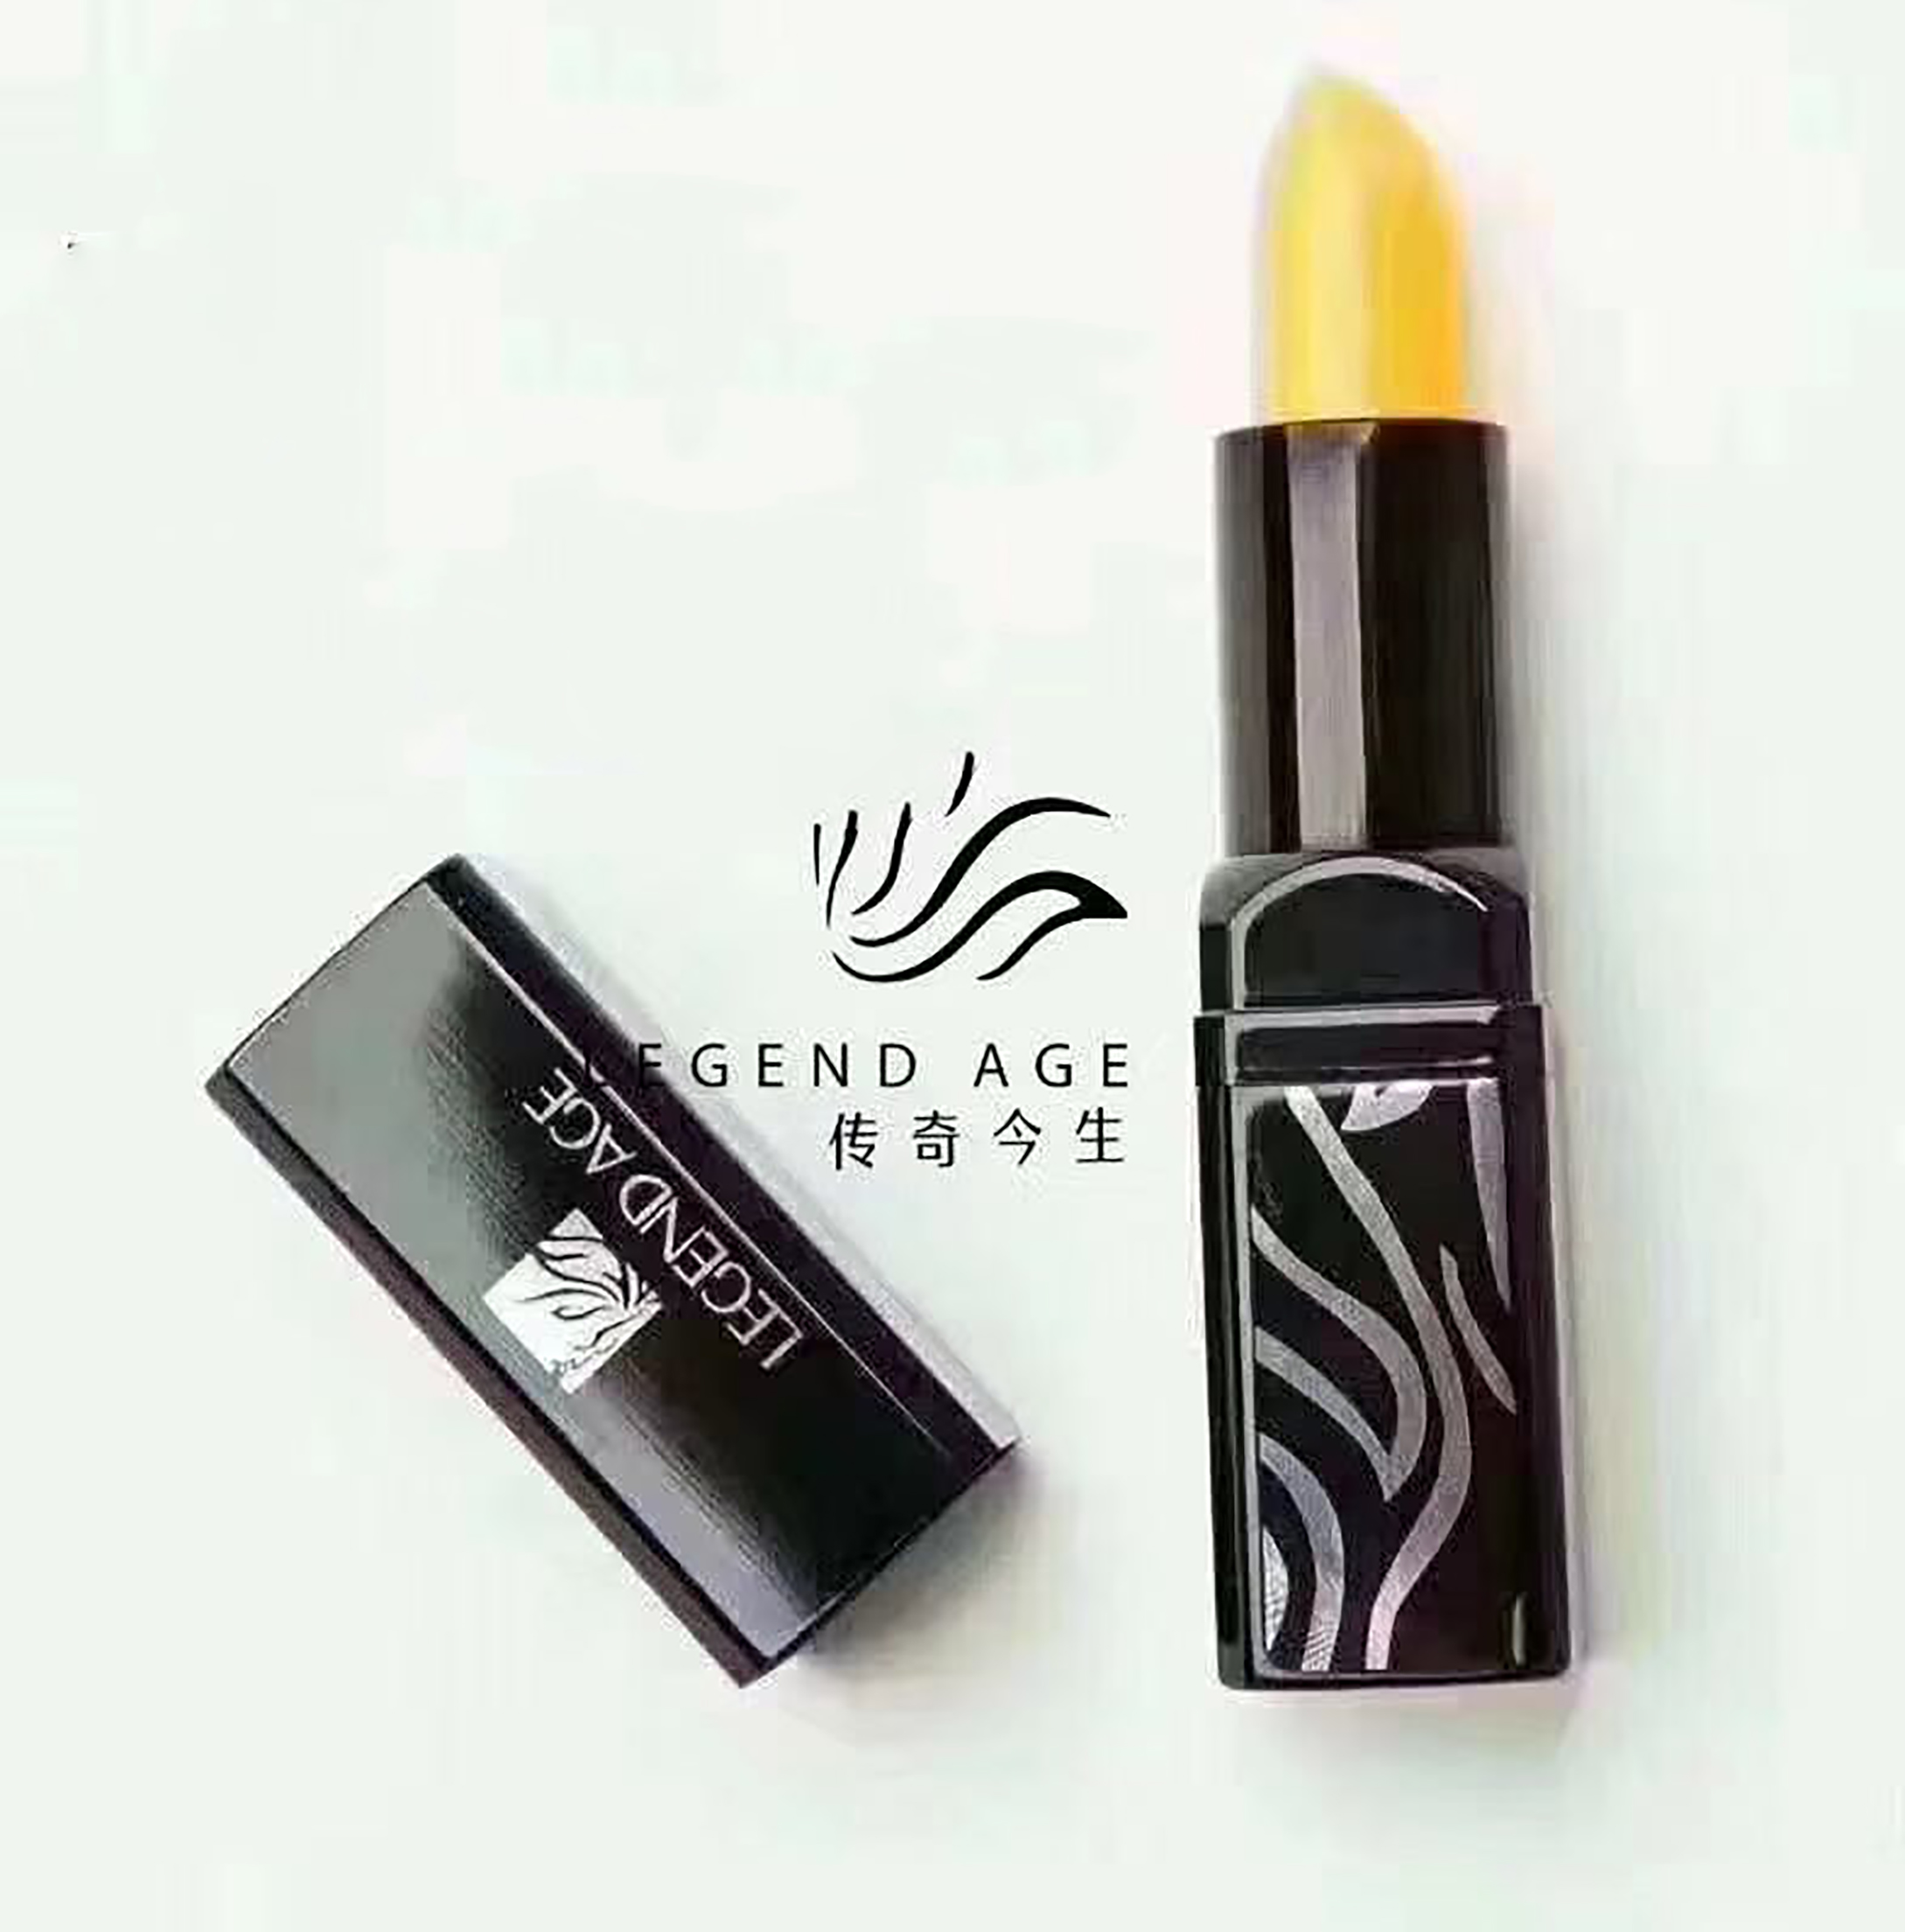 Edible Golden Moisturizing Lipstick for Dry Lips